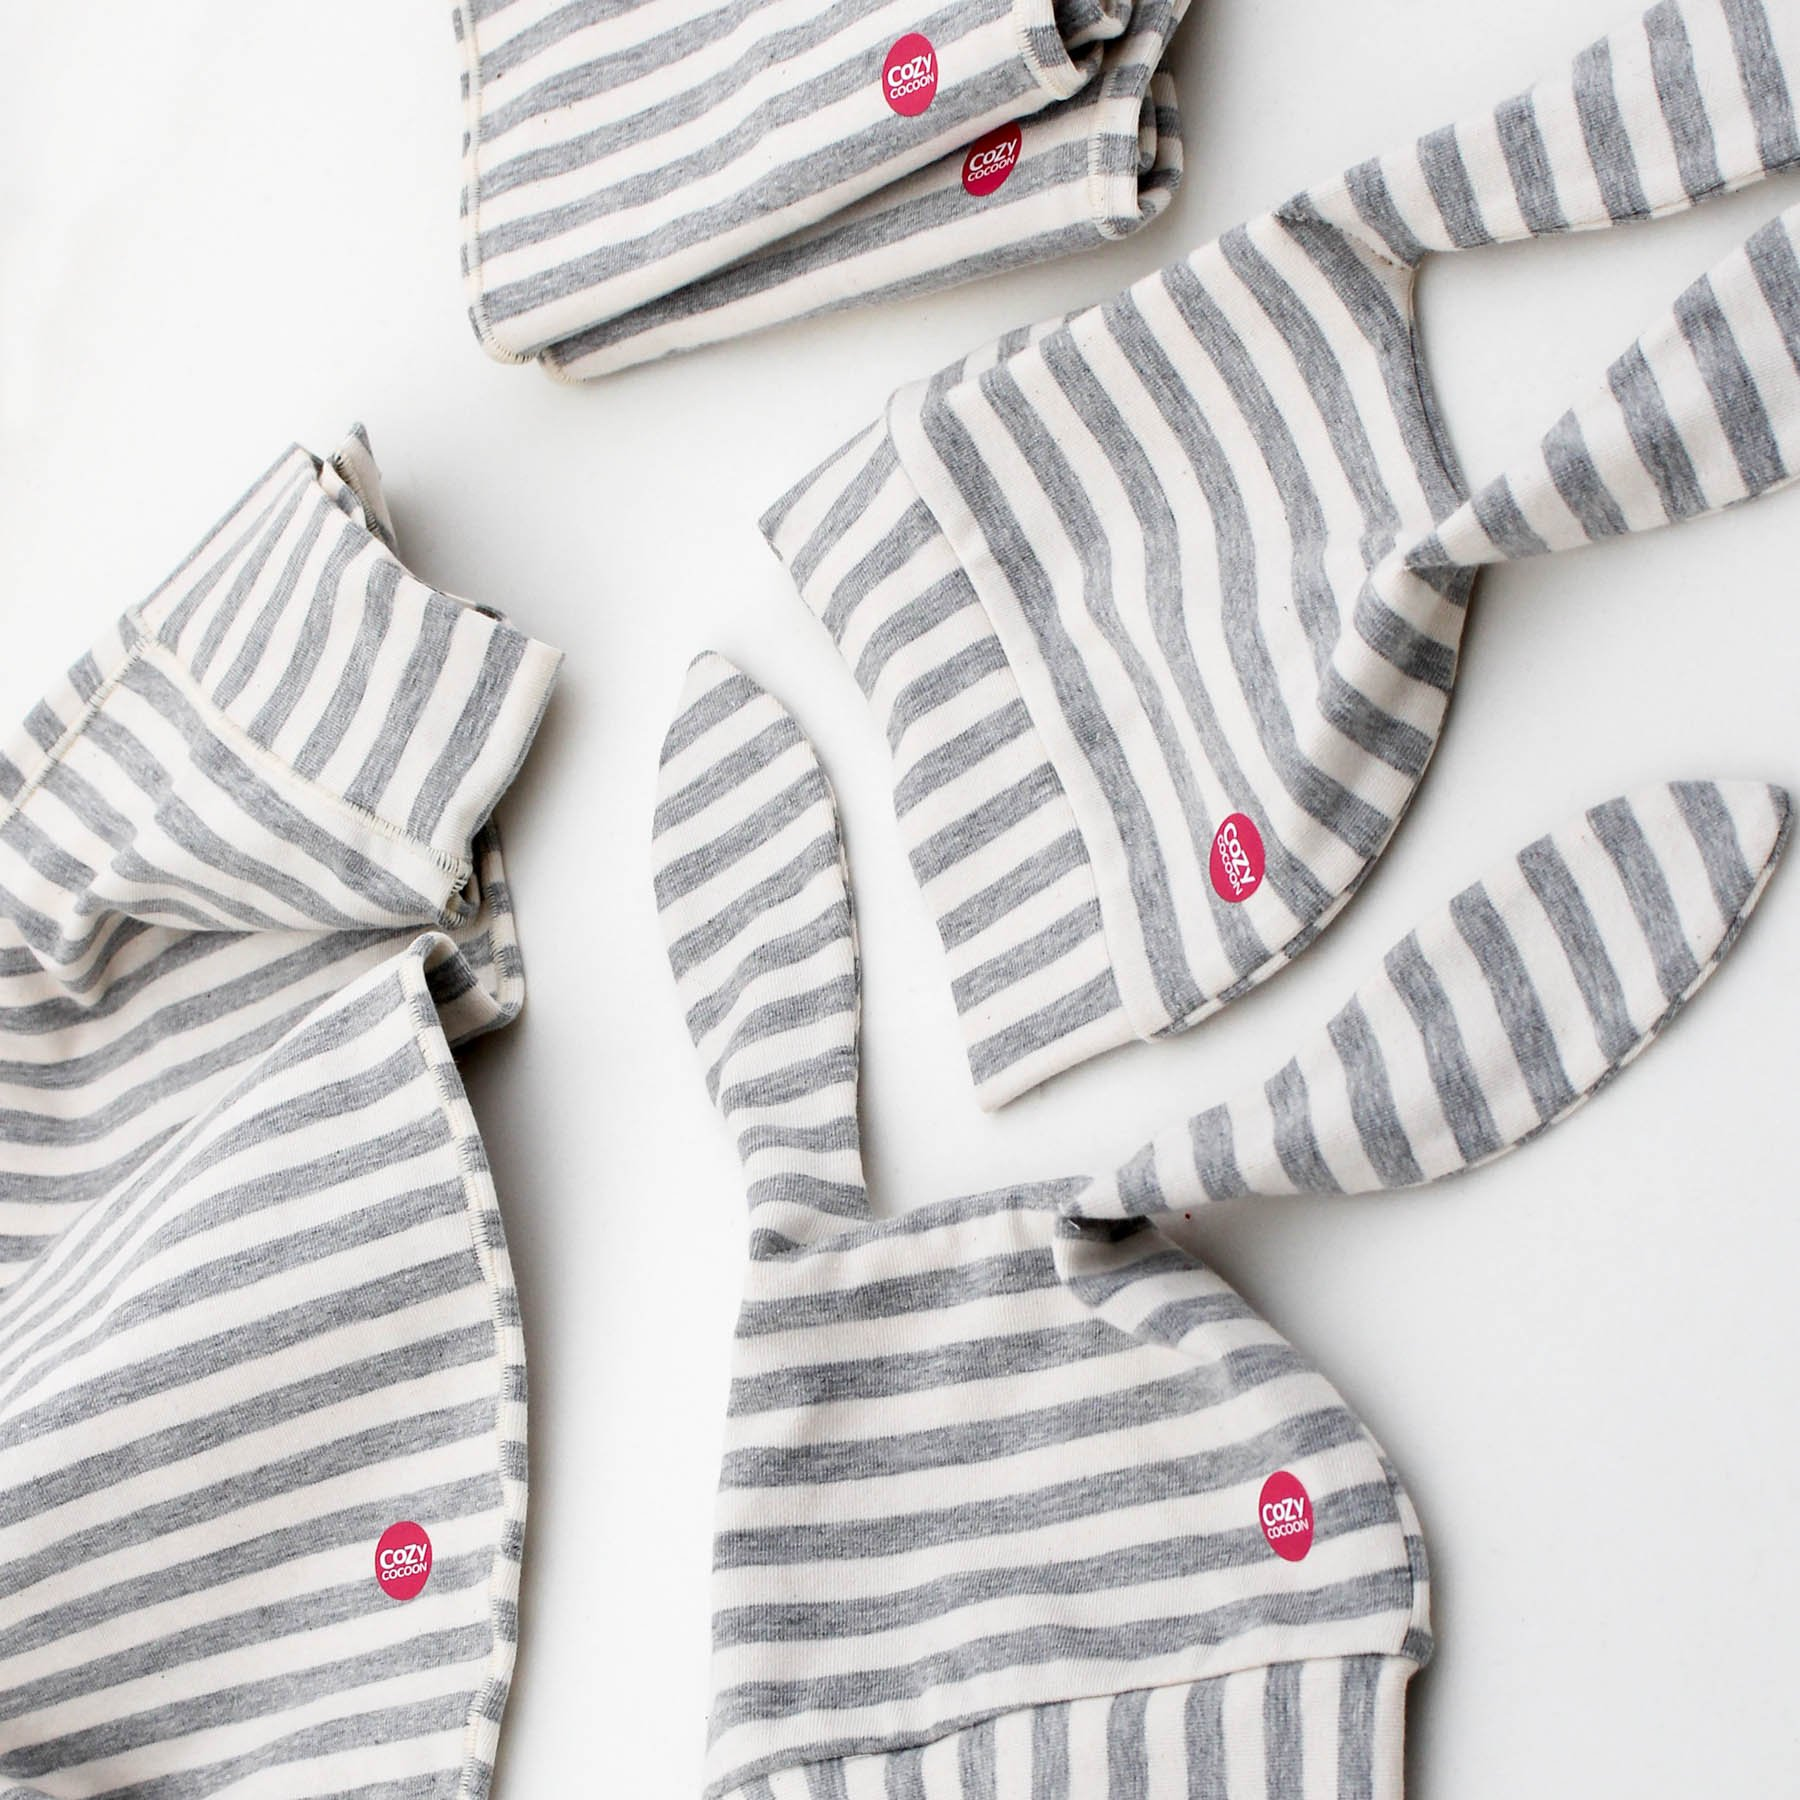 Cozy Cocoon Baby Cocoon Swaddle and Matching Hat, Gray Stripes, 0-3 months by Cozy Cocoon (Image #6)